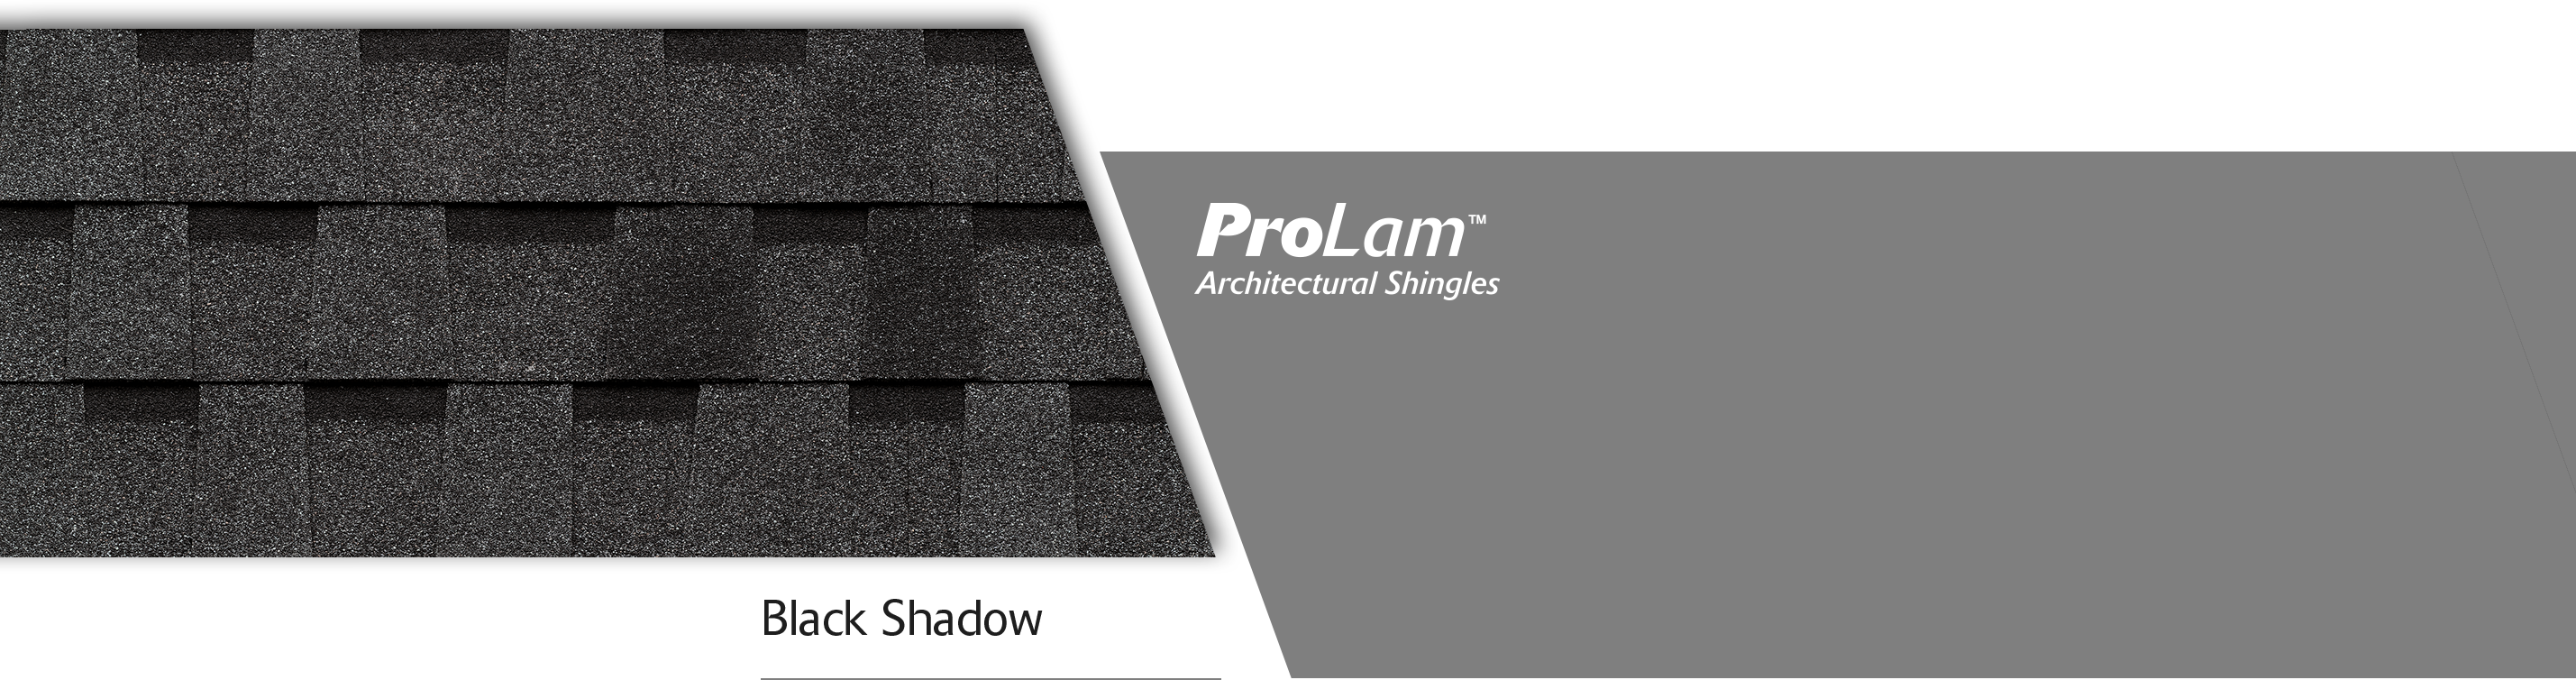 Prolam Architectural Shingles Atlas Roofing